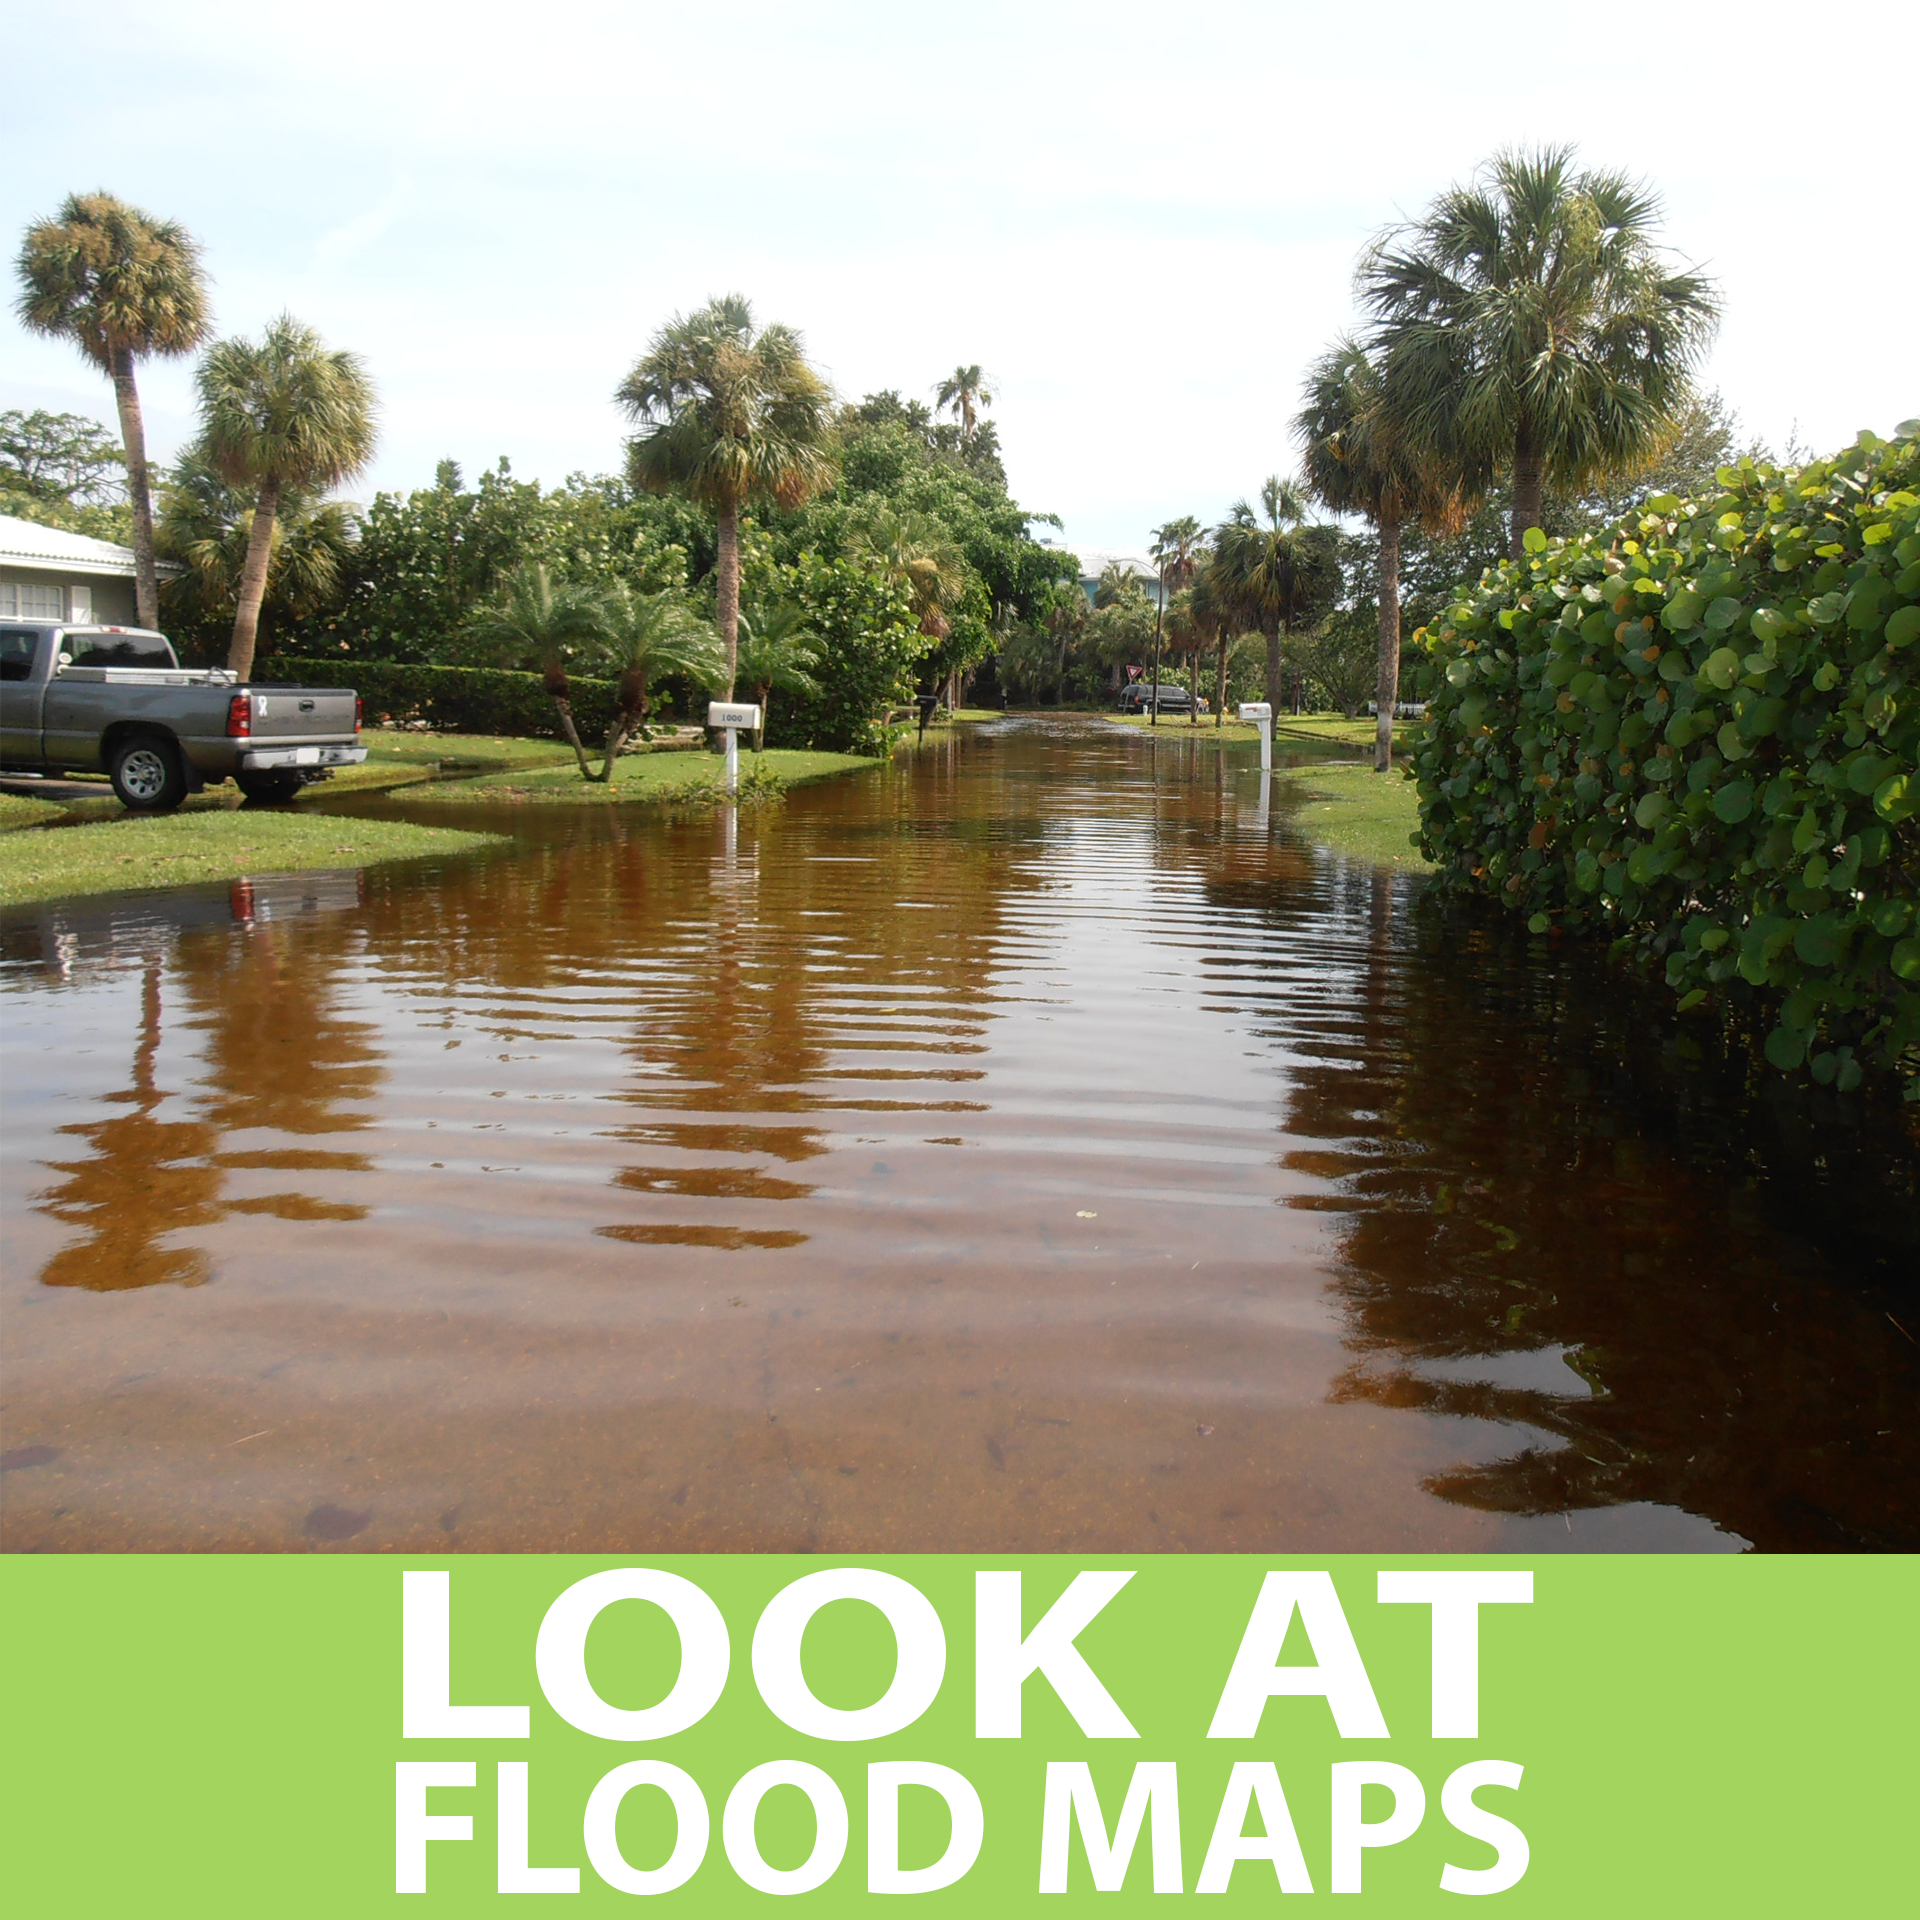 Look at flood maps